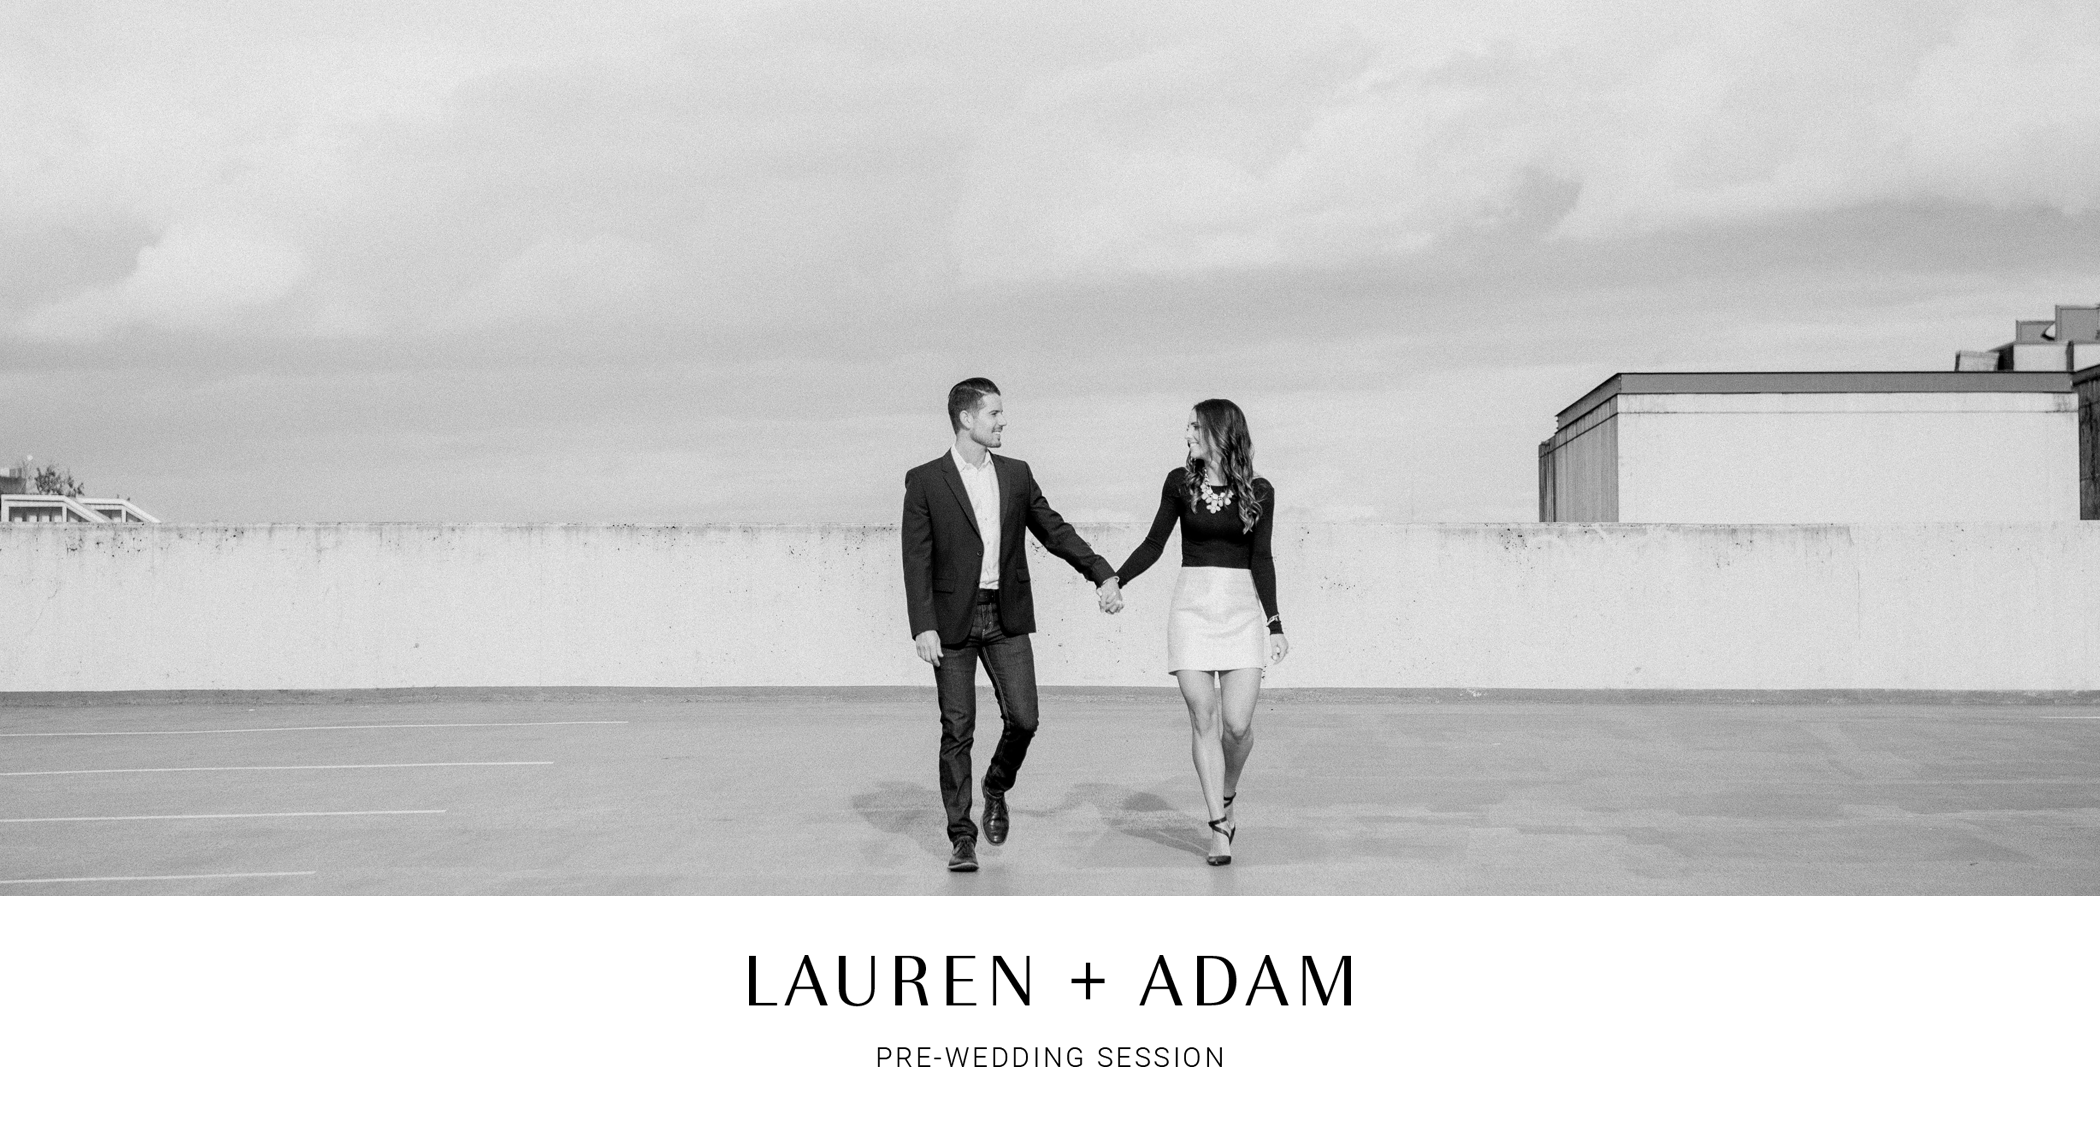 001-kaoverii-silva-LA-prewedding-vancouver-photography-3.png